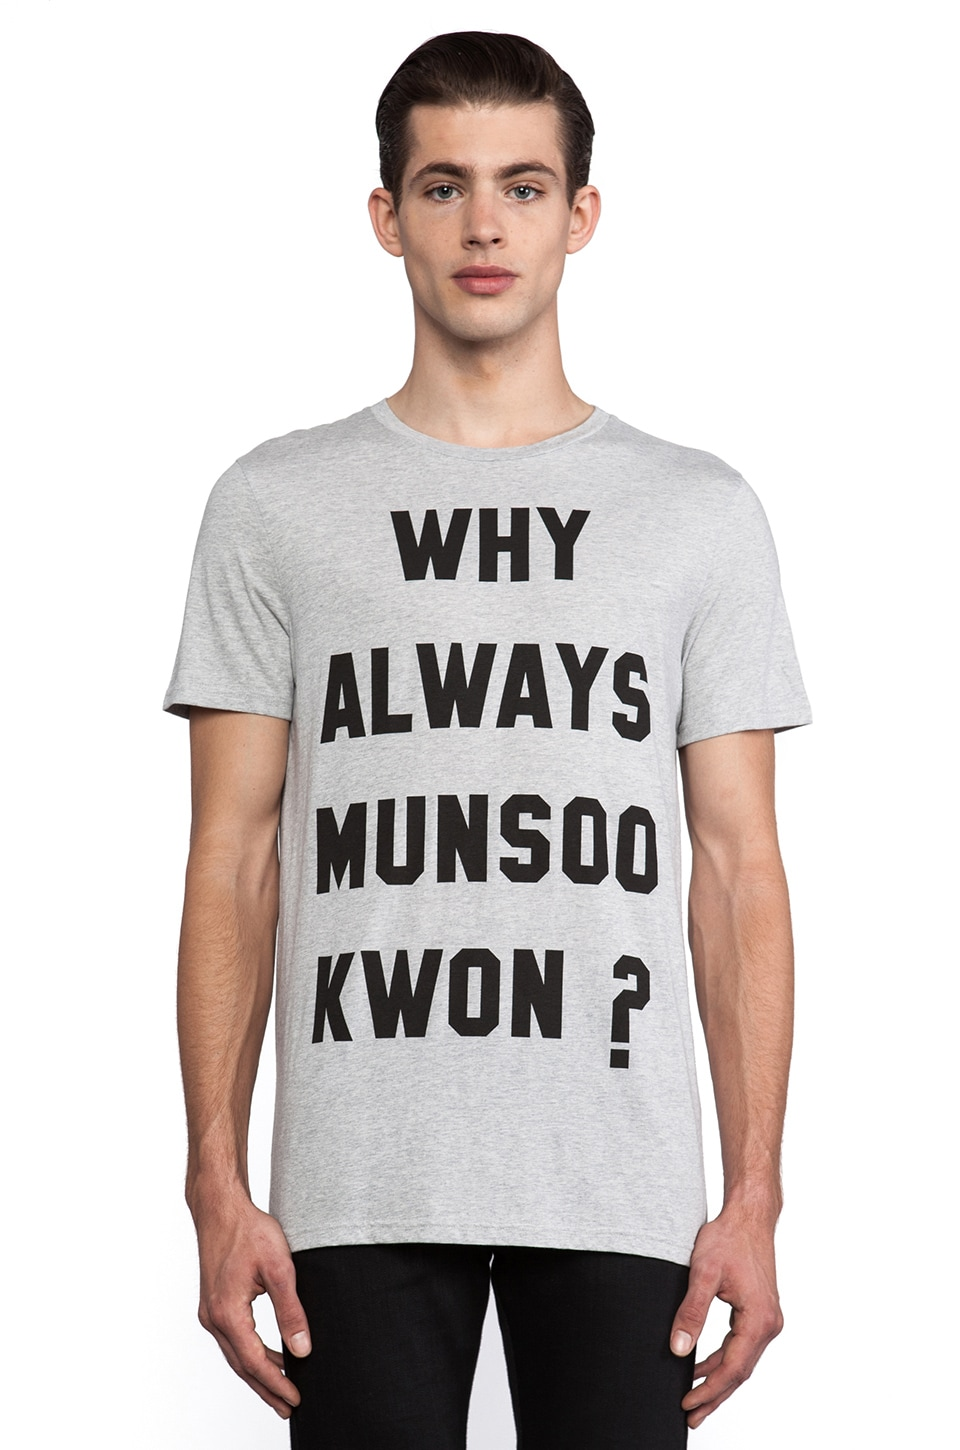 Munsoo Kwon Why Always Tee in Light Gray